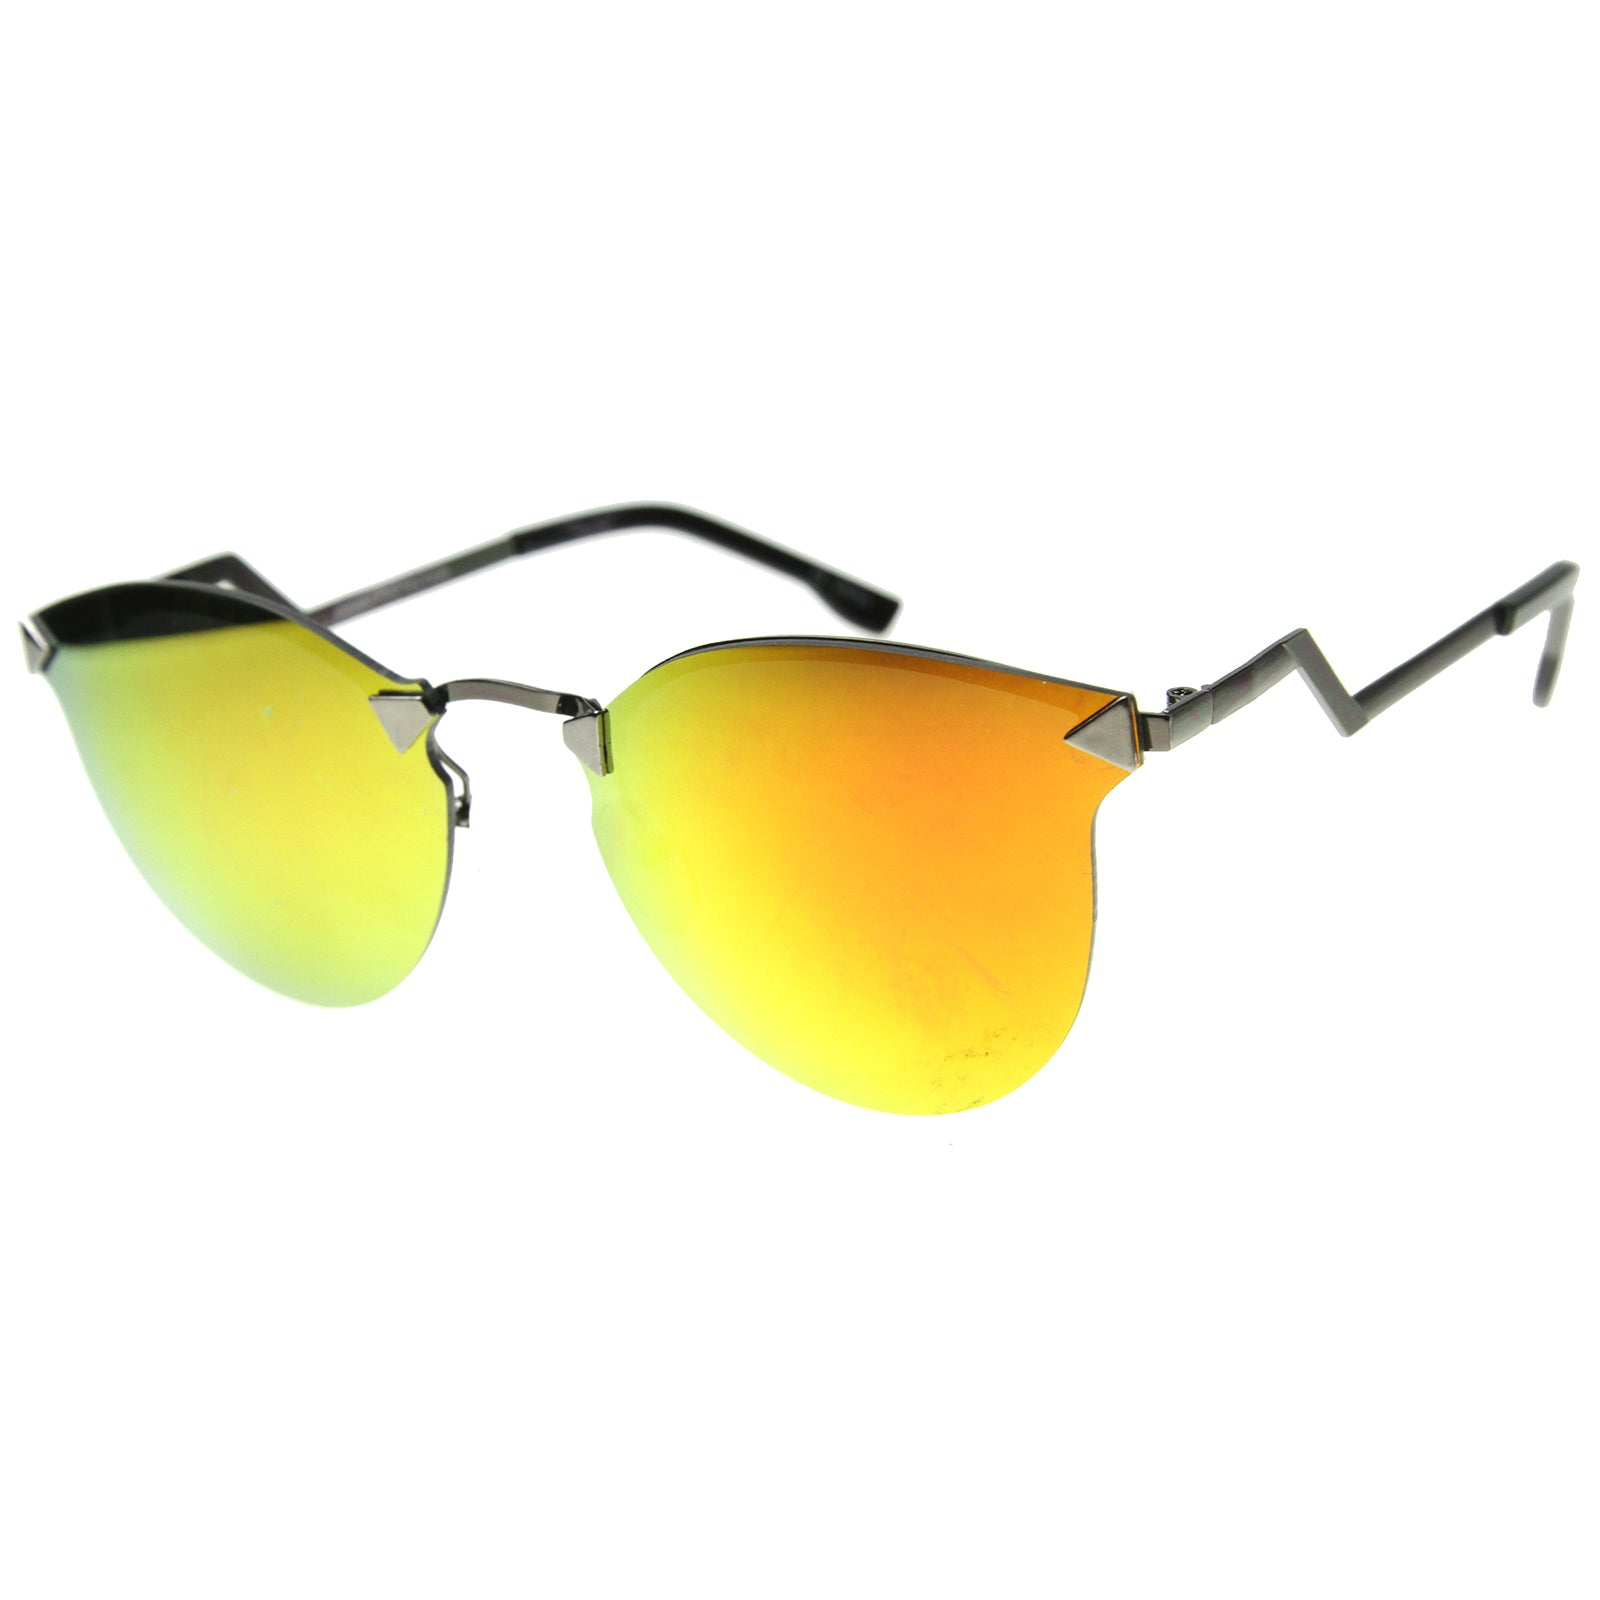 Mens Metal Aviator Sunglasses With UV400 Protected Mirrored Lens - sunglass.la - 5